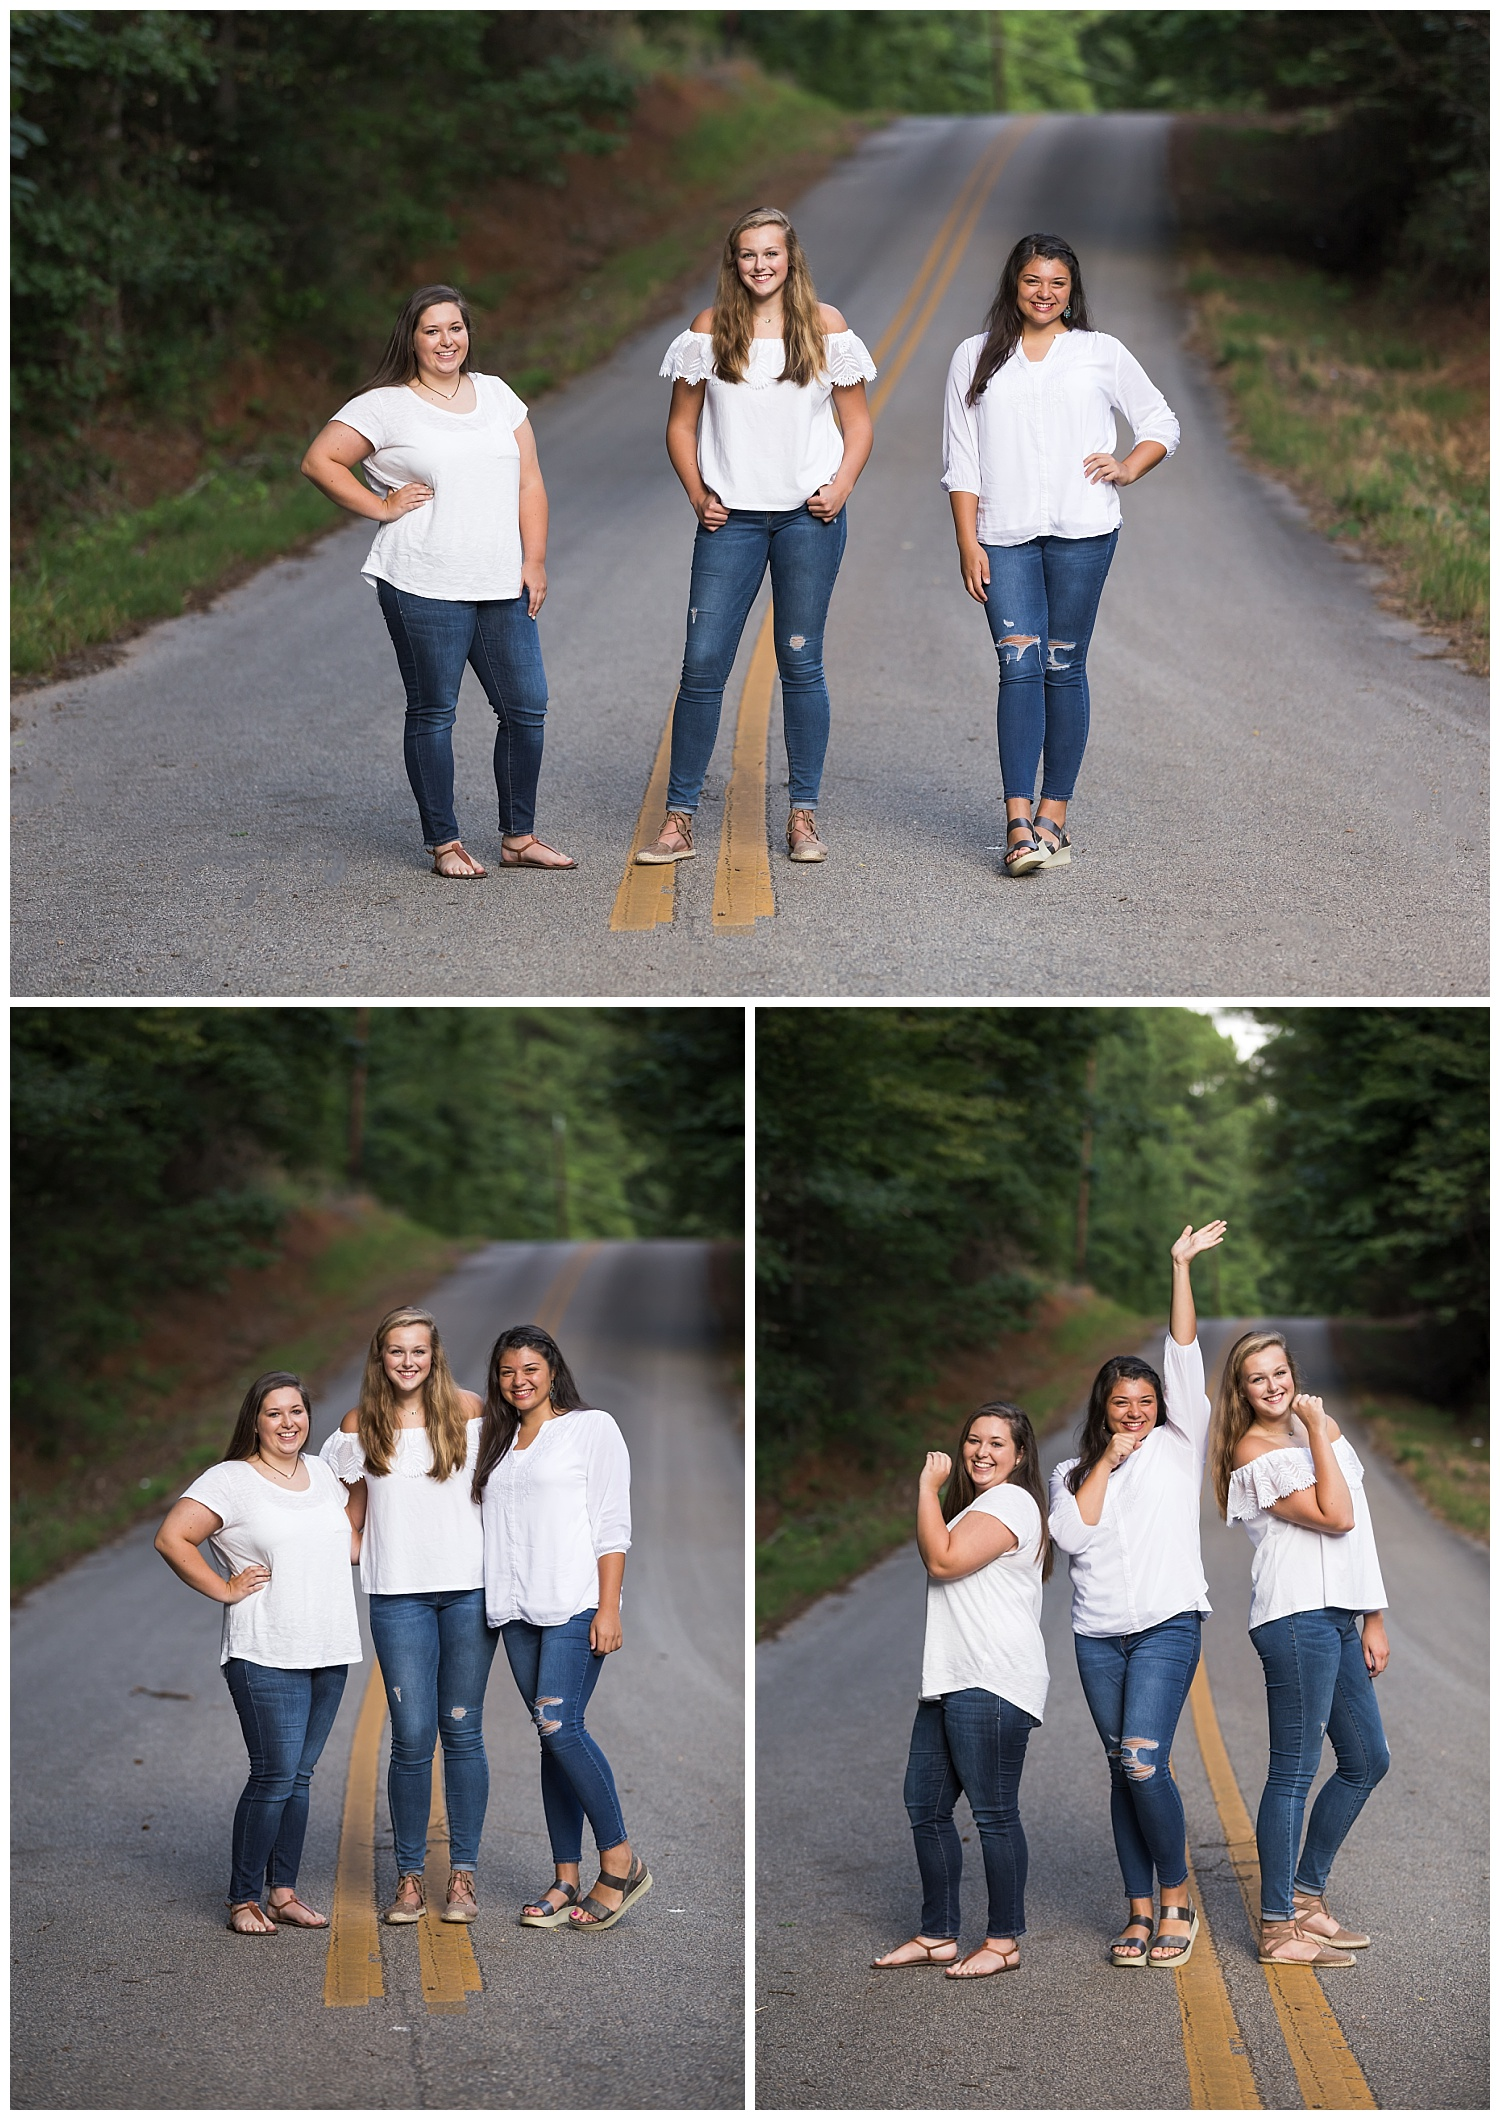 loachapolka backroad senior portraits auburn alabama